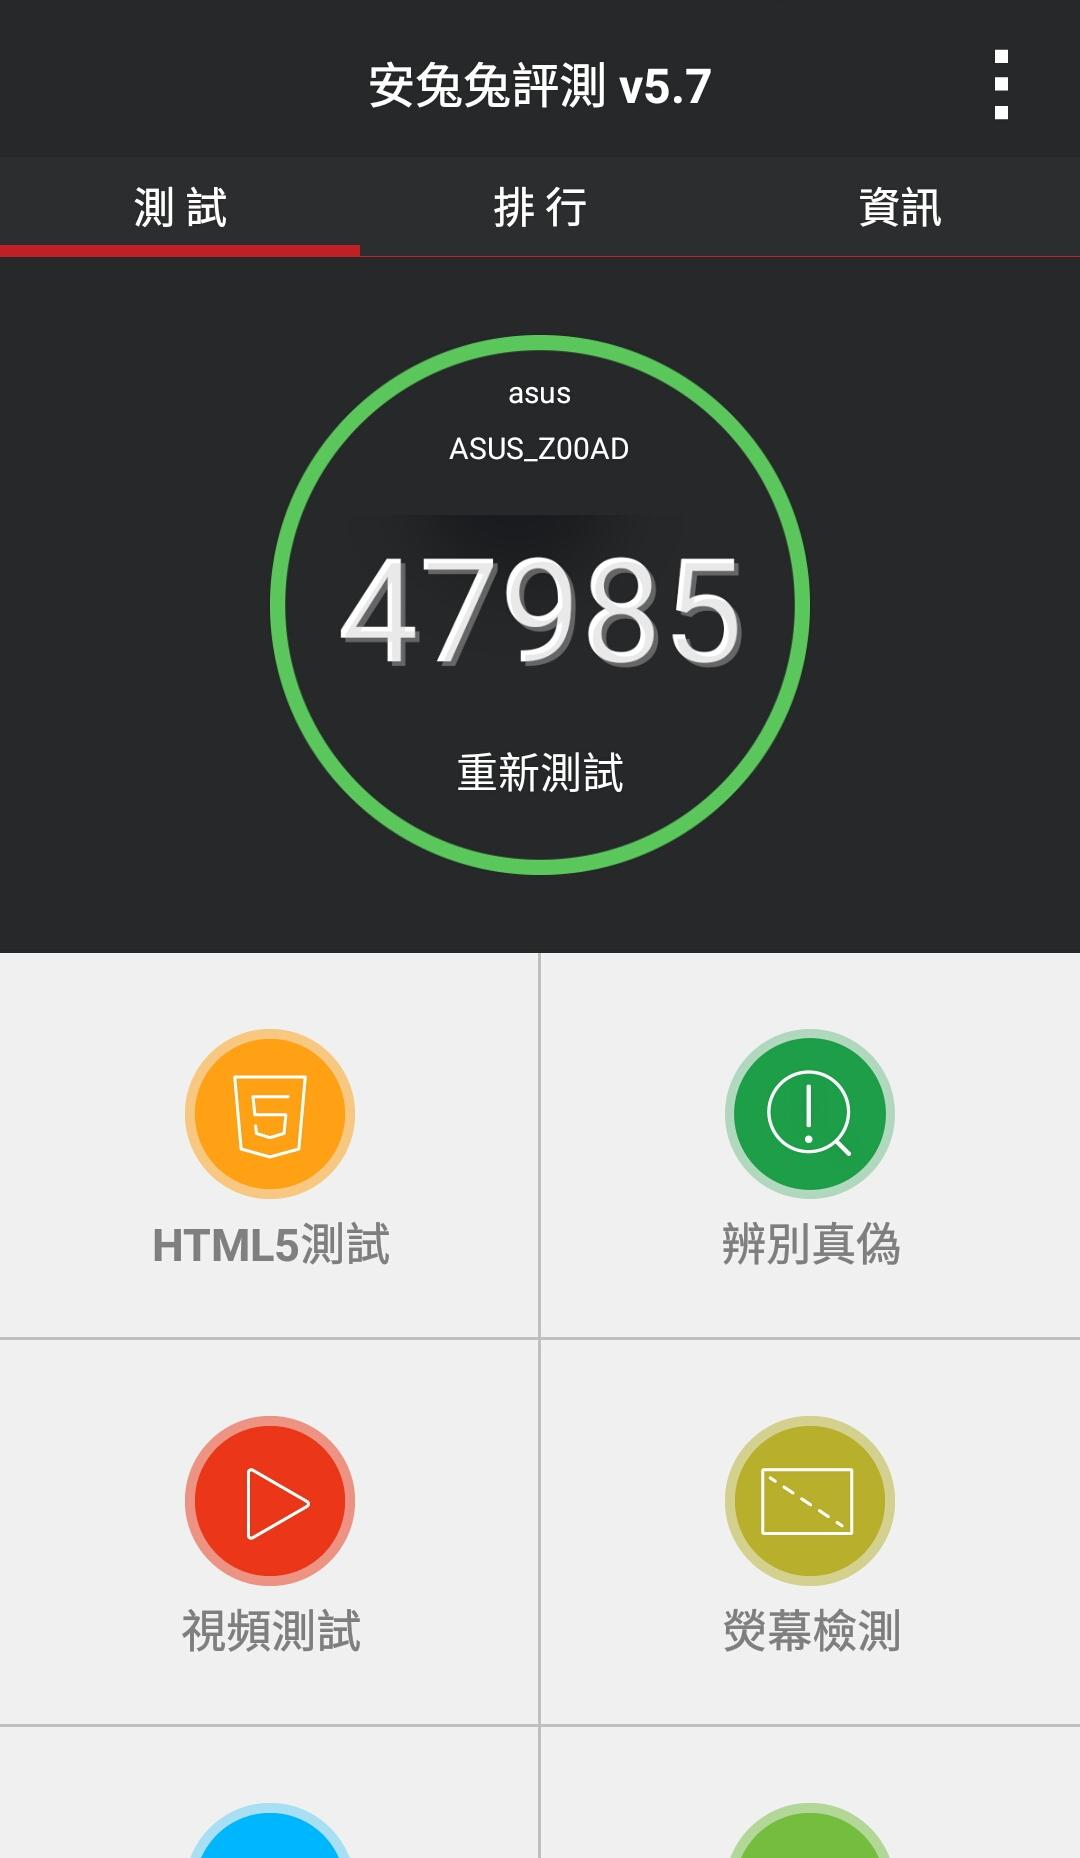 [開箱] 一機難求Zenfone2 ZE551ML 4GB-32GB入手開箱 - XFastest - AnnTU-01.jpg